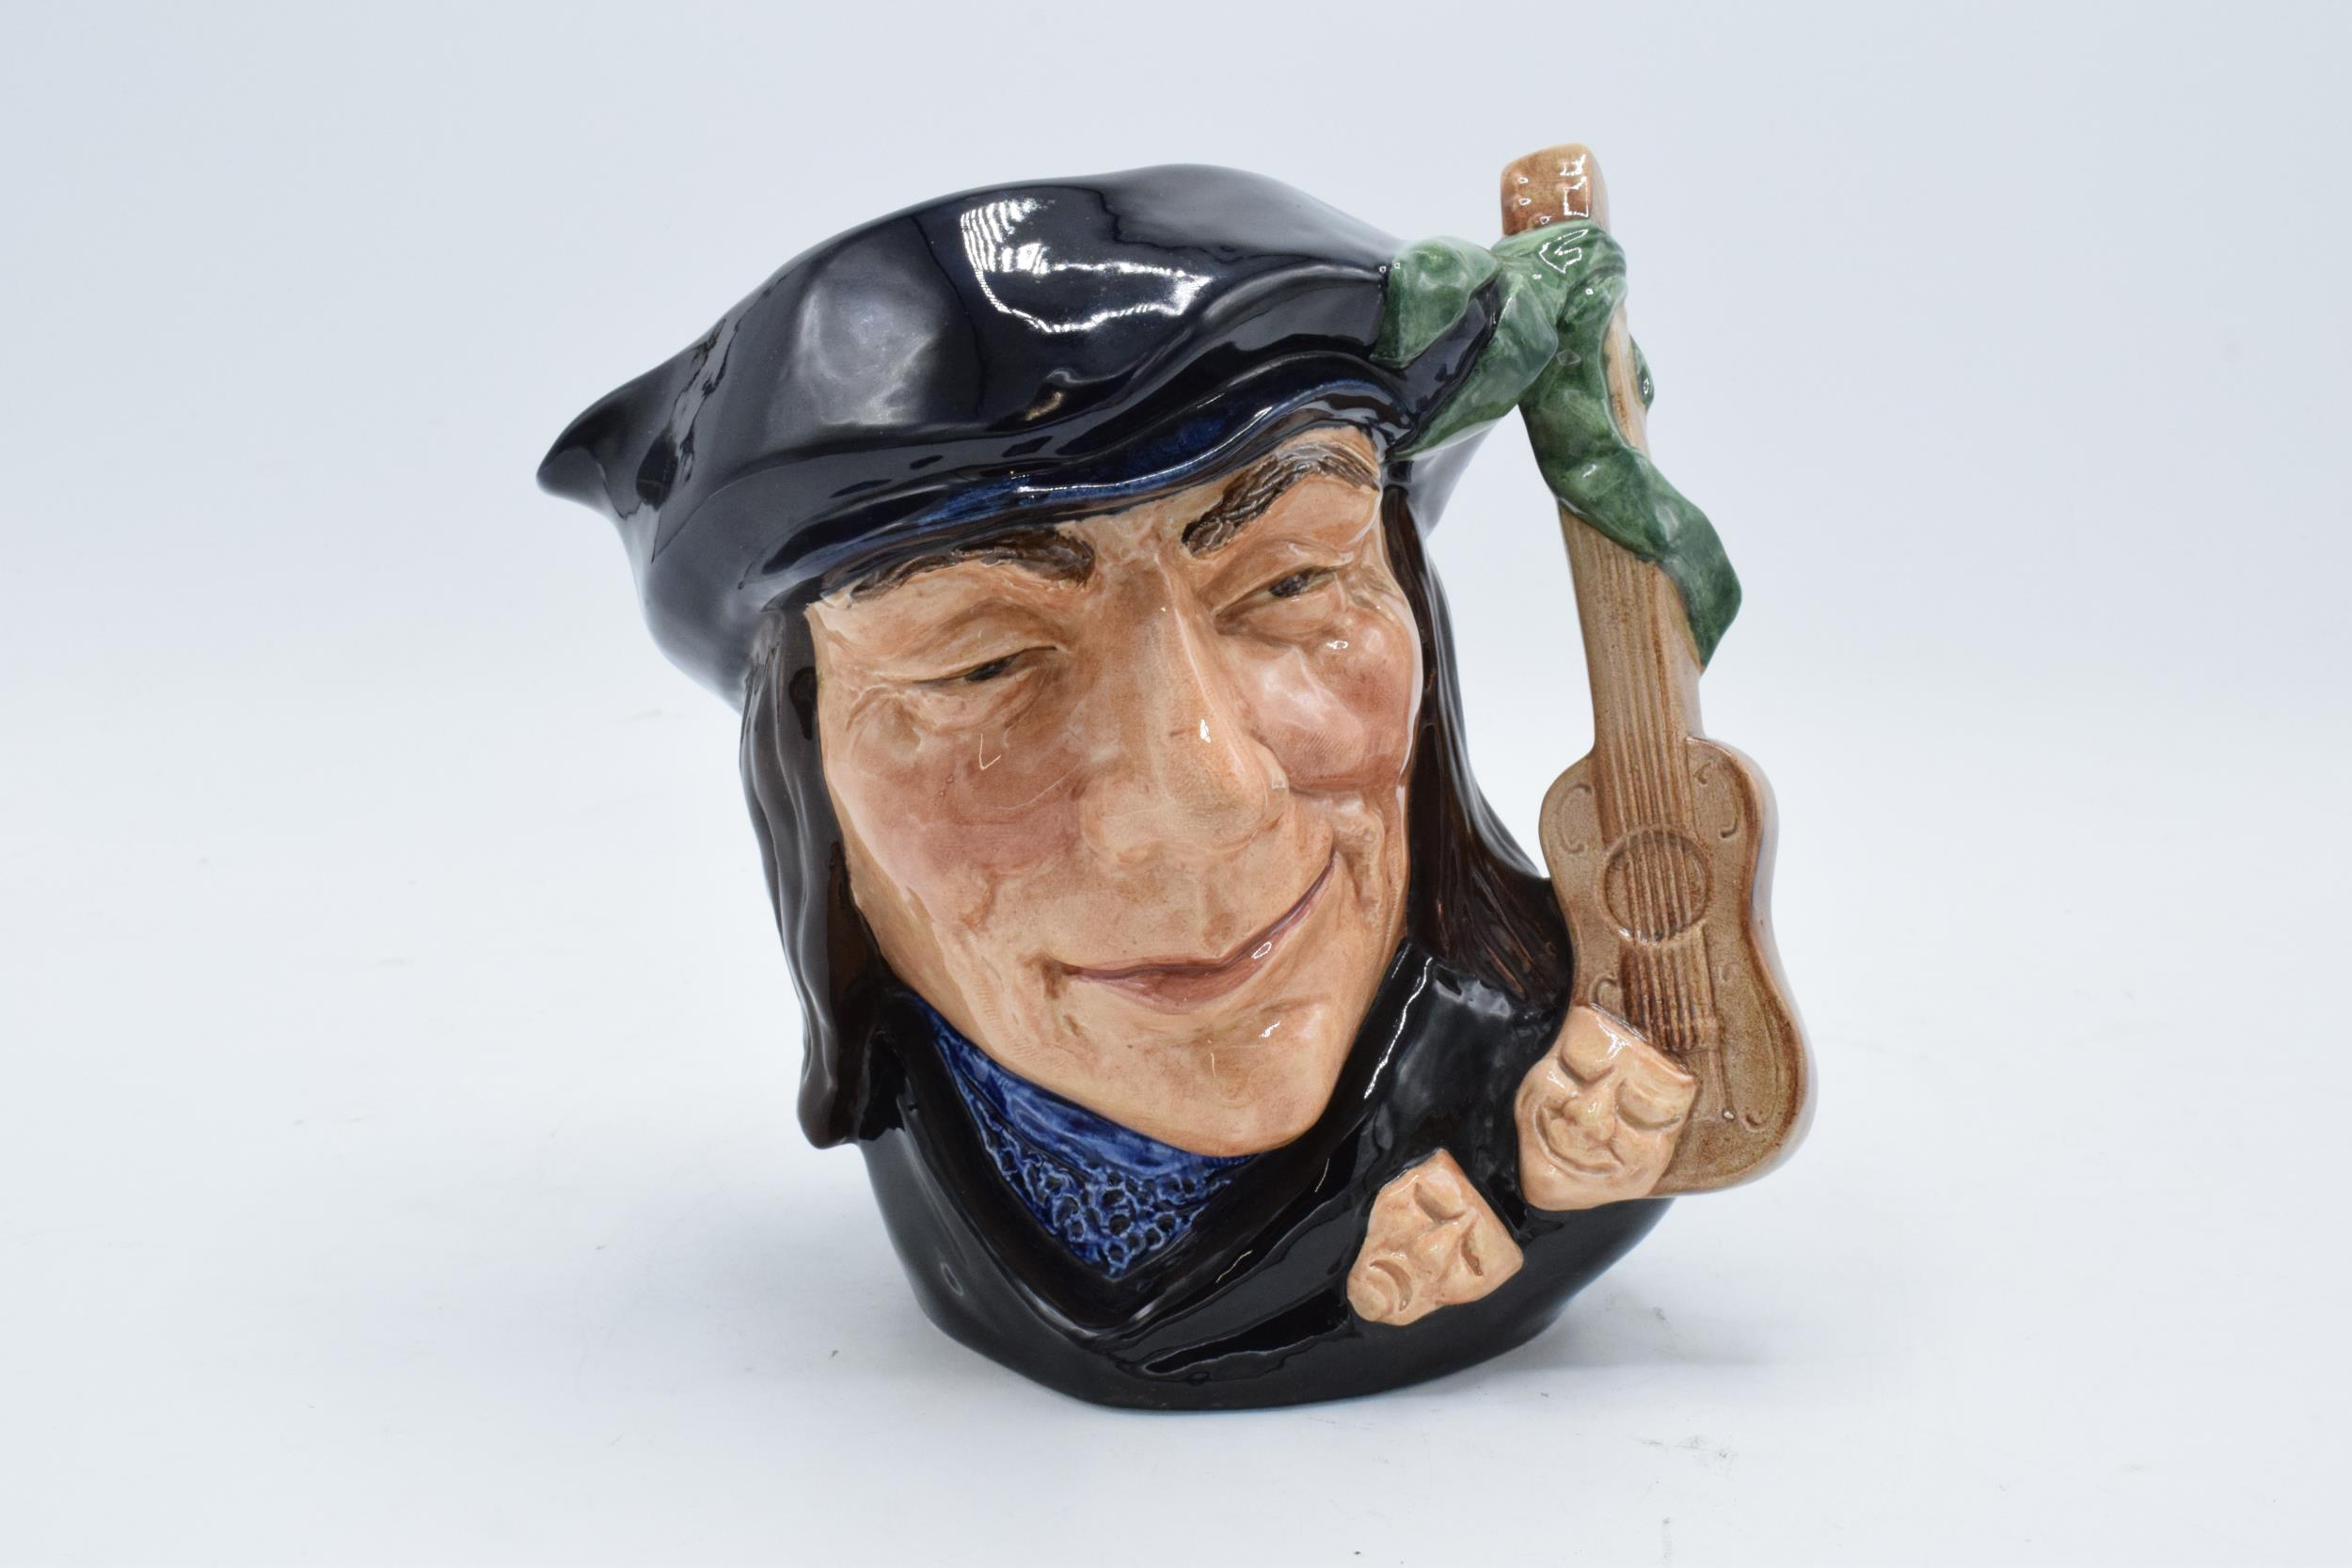 Large Royal Doulton character jug Scaramouche D6558. In good condition with no obvious damage or